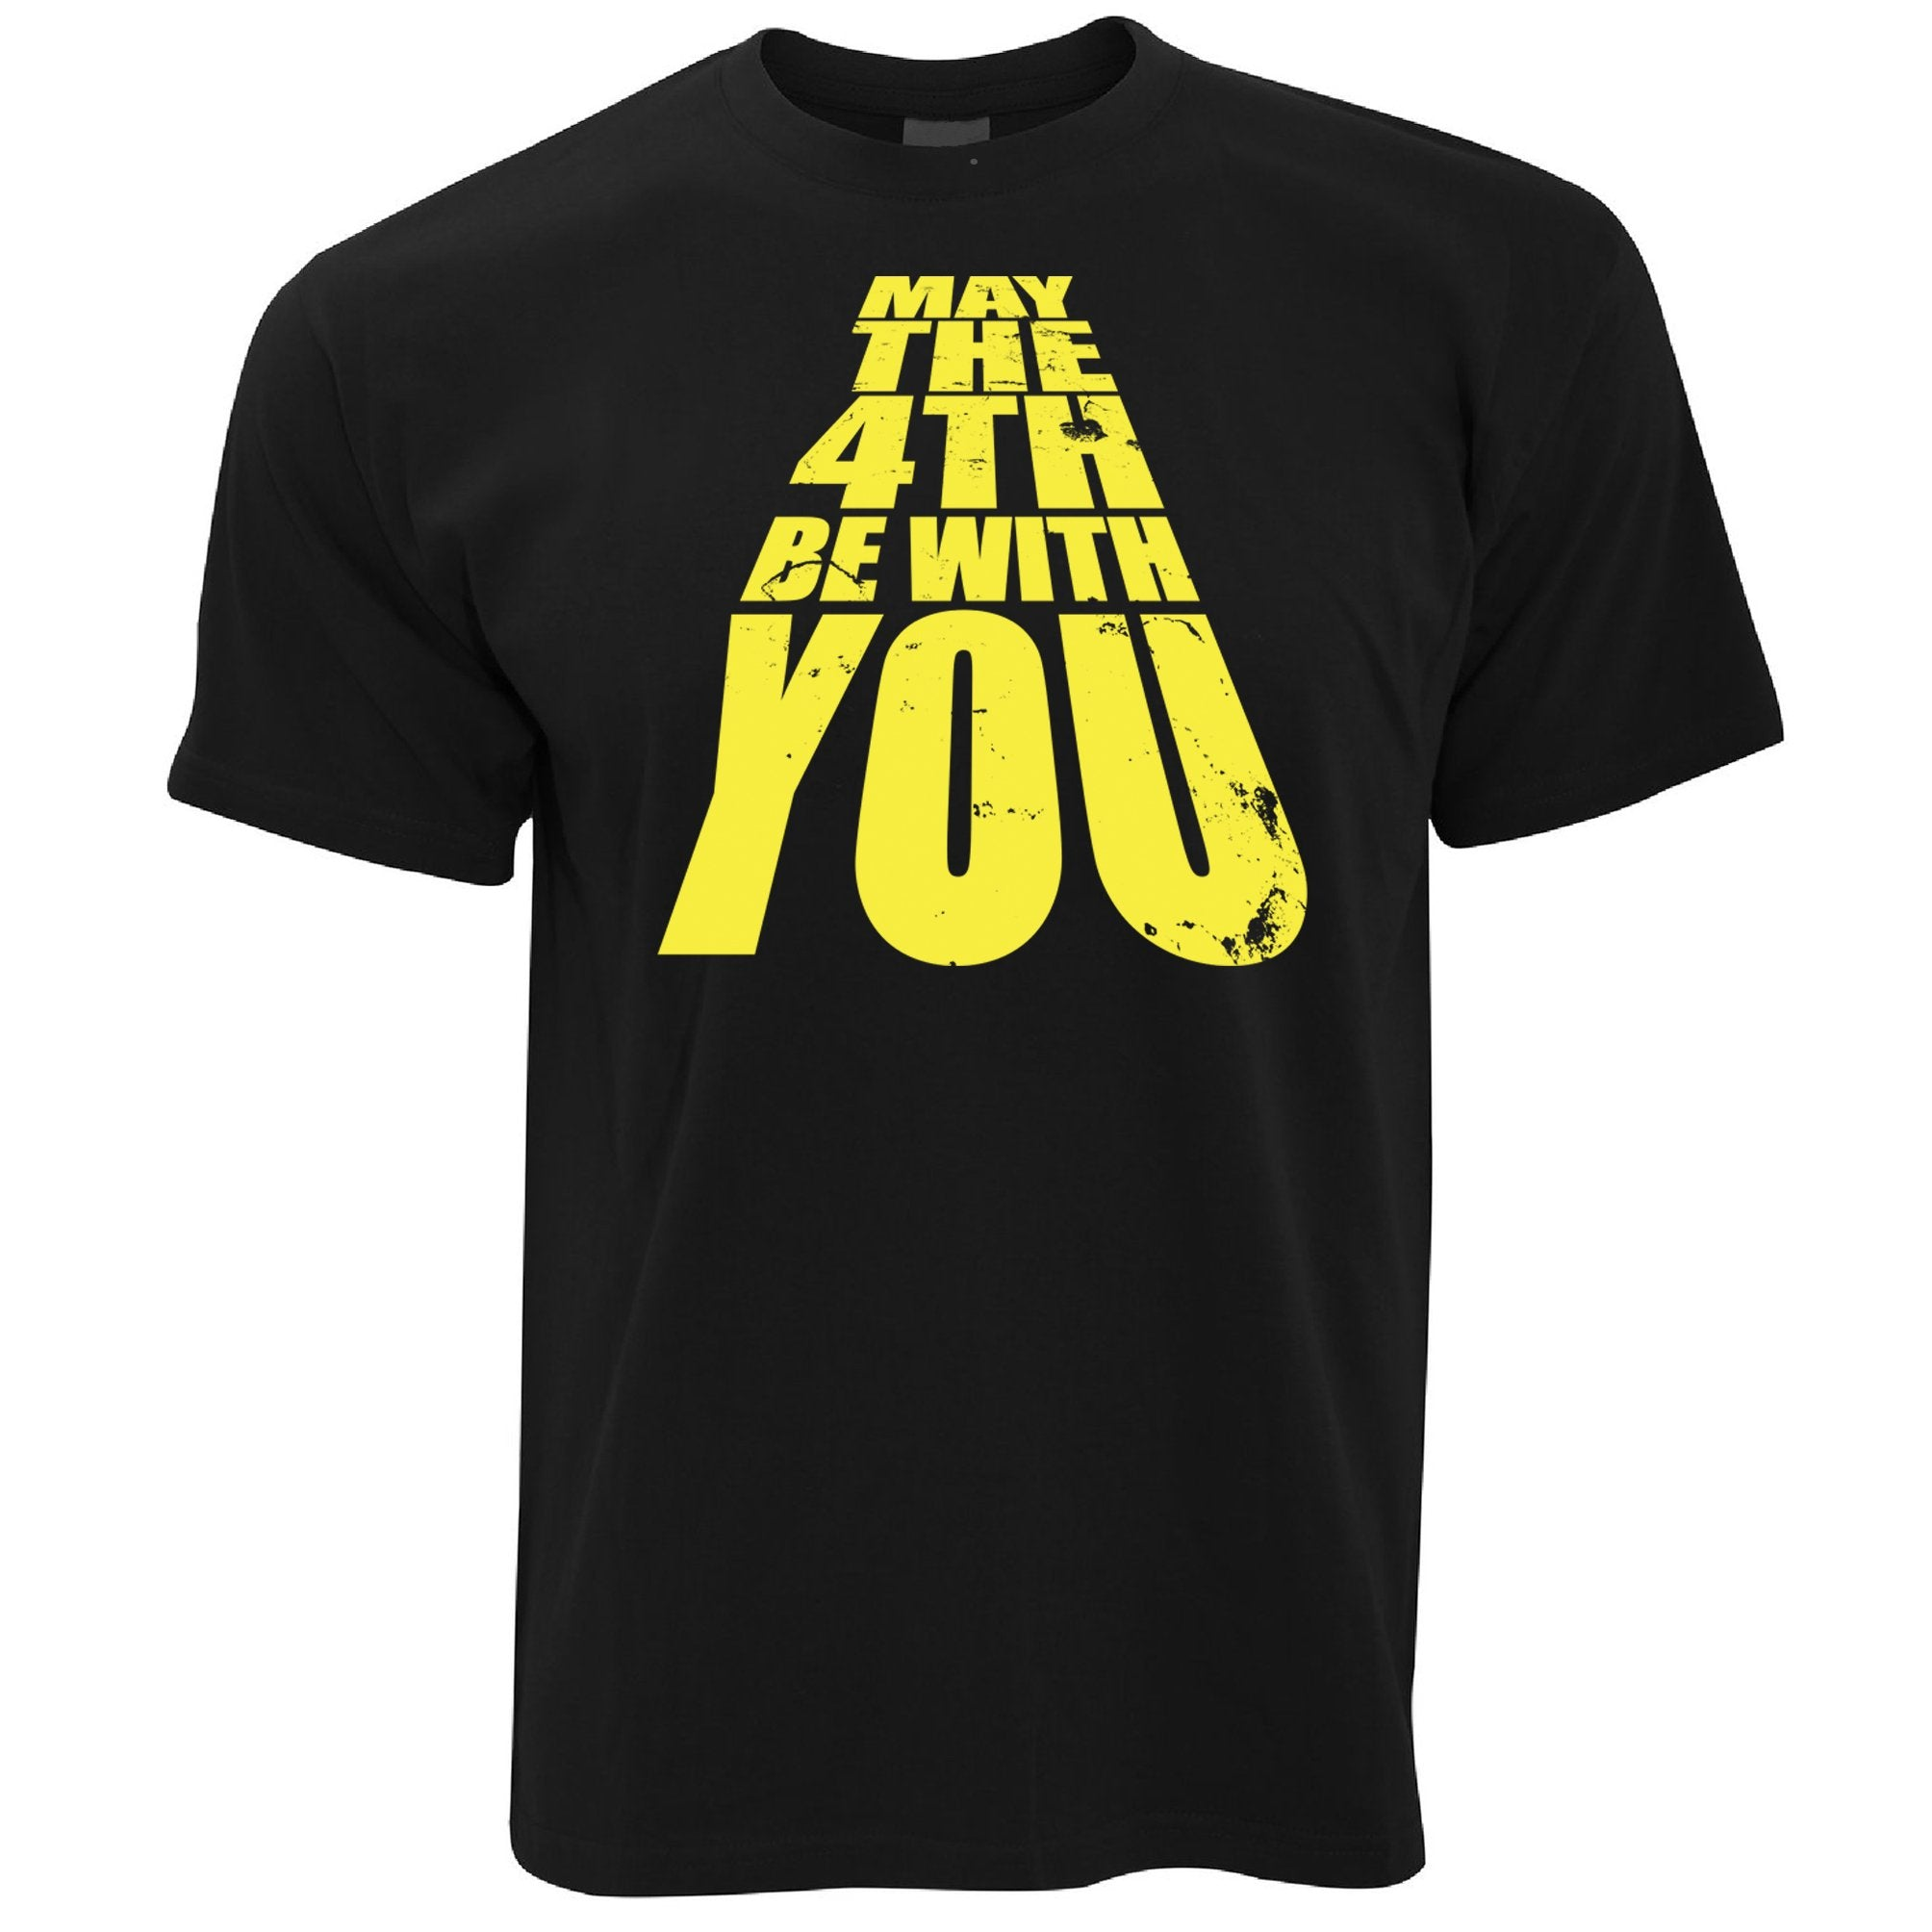 Geek T Shirt May The 4th Be With You Slogan